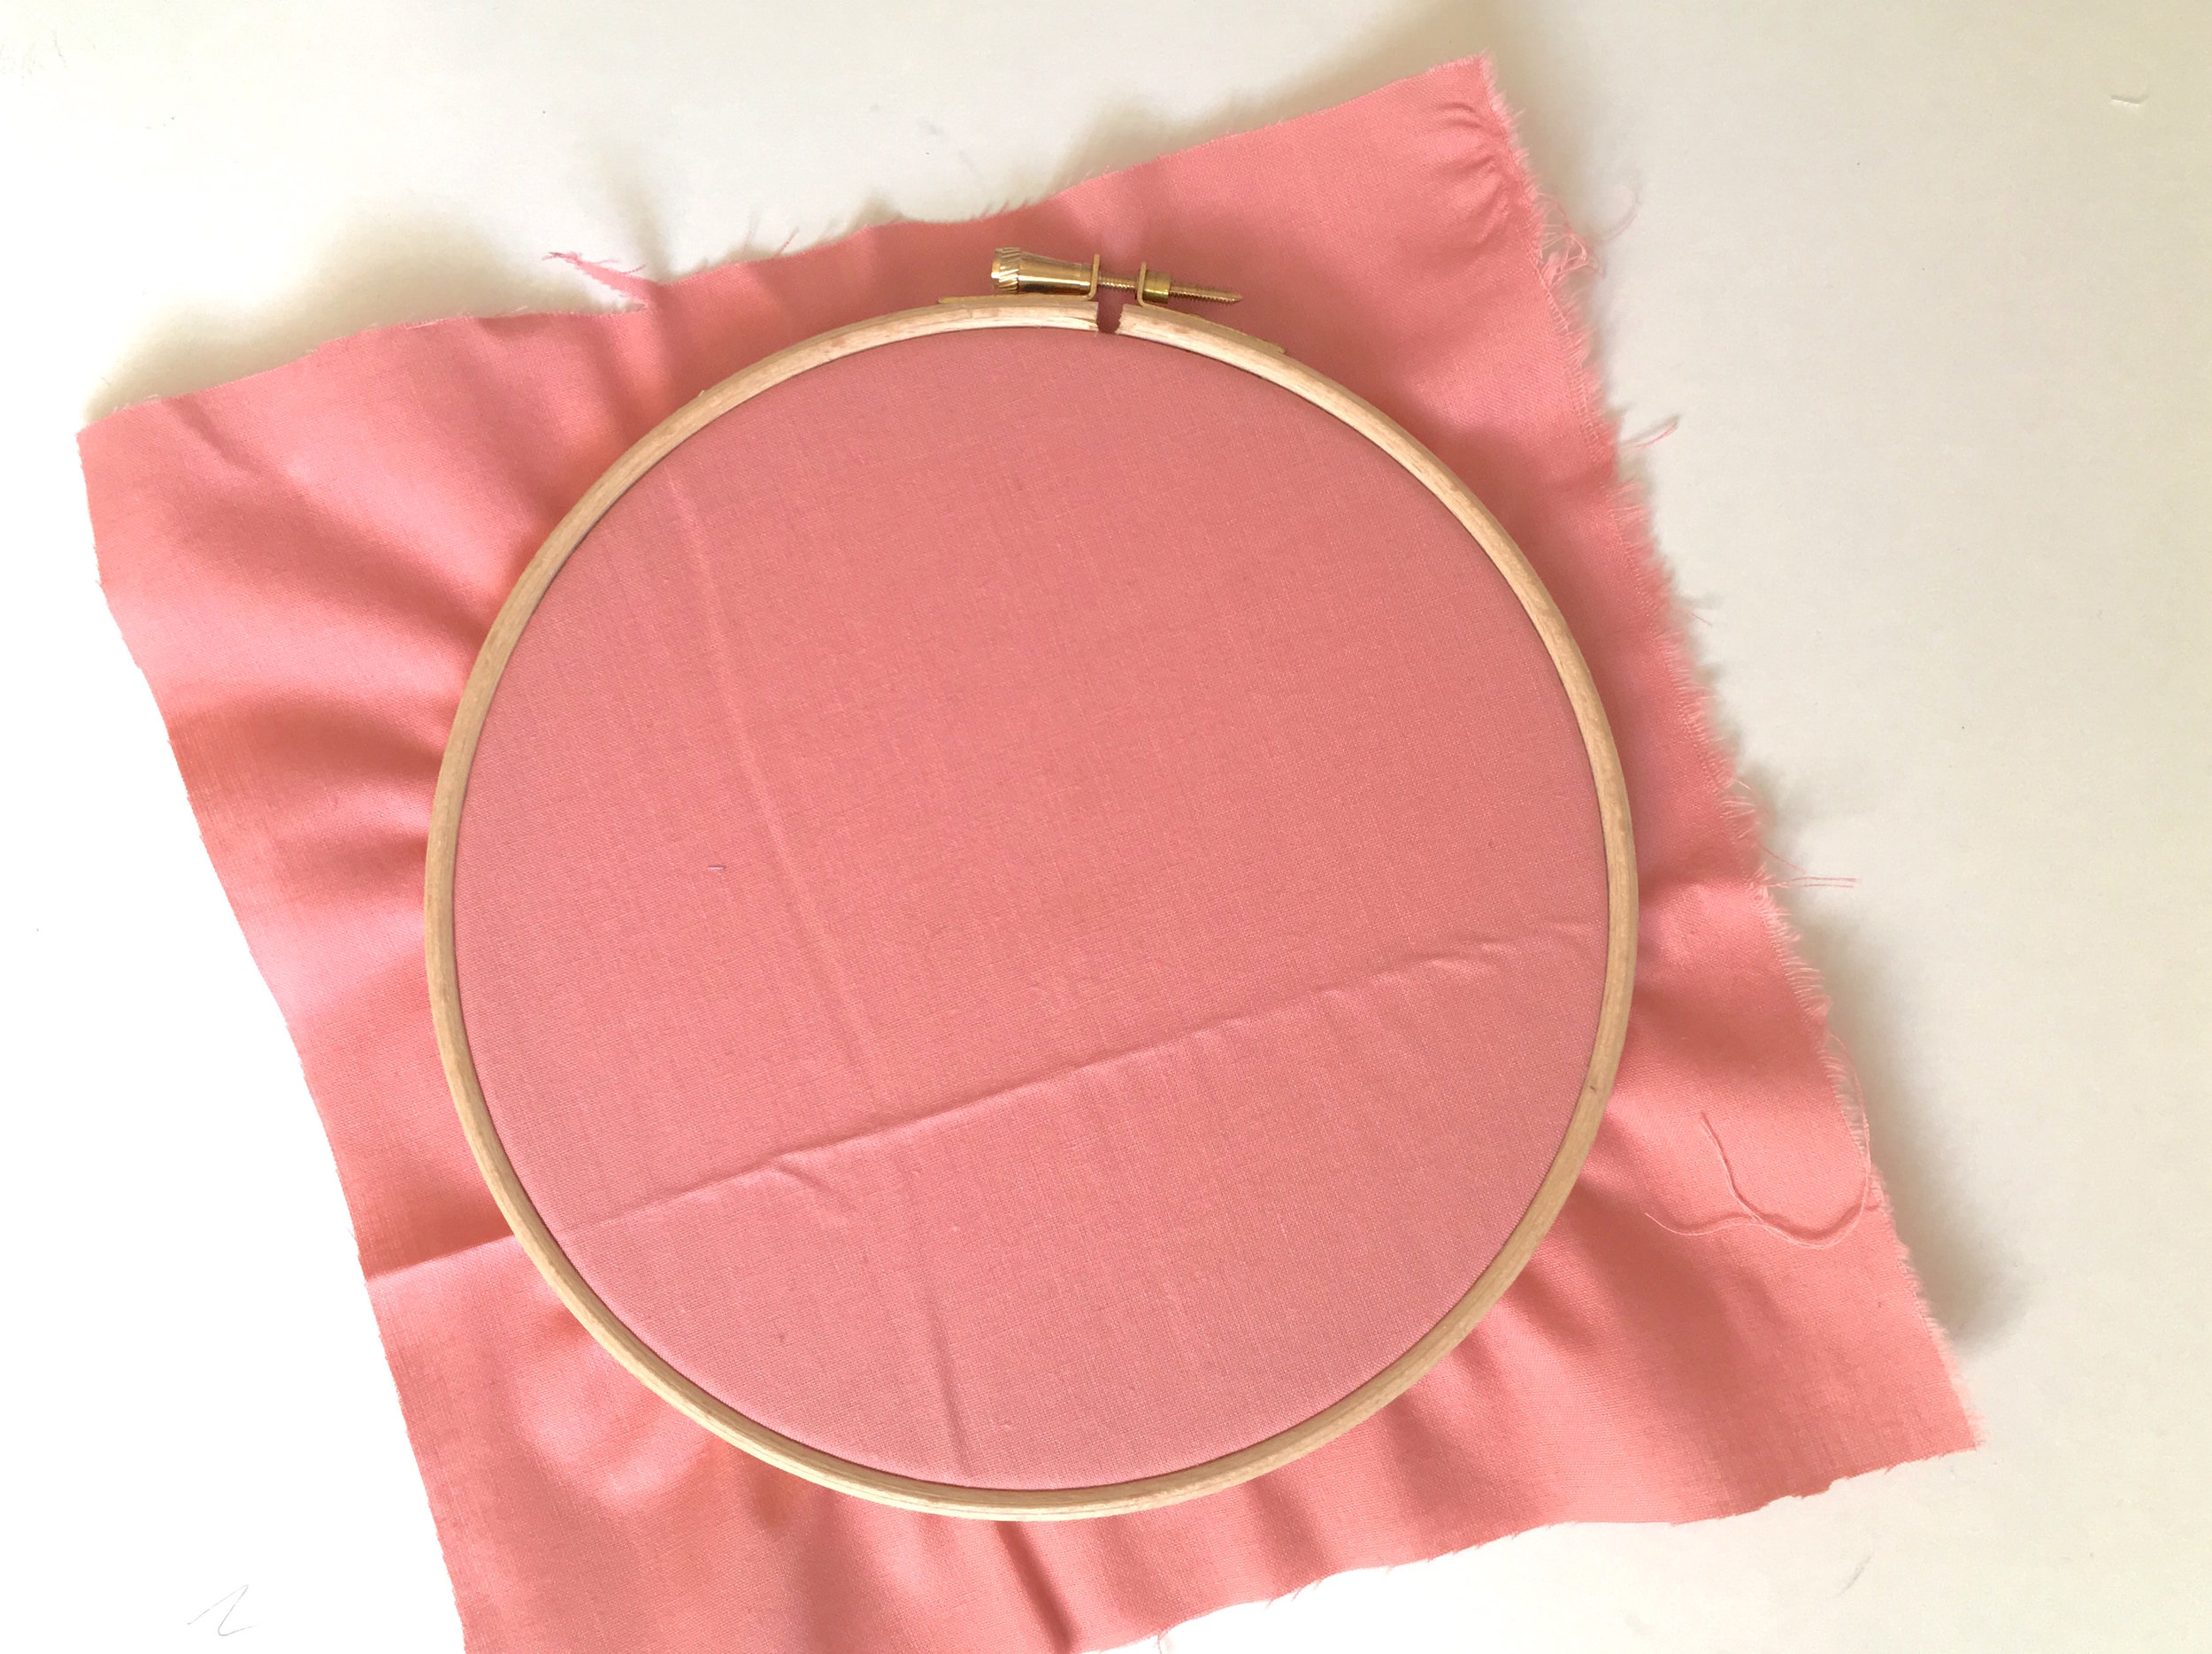 to fix your background fabric in place, loosen the screw at the top of your hoop. You don't need to unscrew it all the way. Once it's a bit looser you should be able to separate the inner and outer hoop. Place your fabric over the inner hoop, and then push the outer hoop over the top, so that the fabric is pinched in place between the two rings. Now you can tighten up the screw again to hold the fabric in place. -